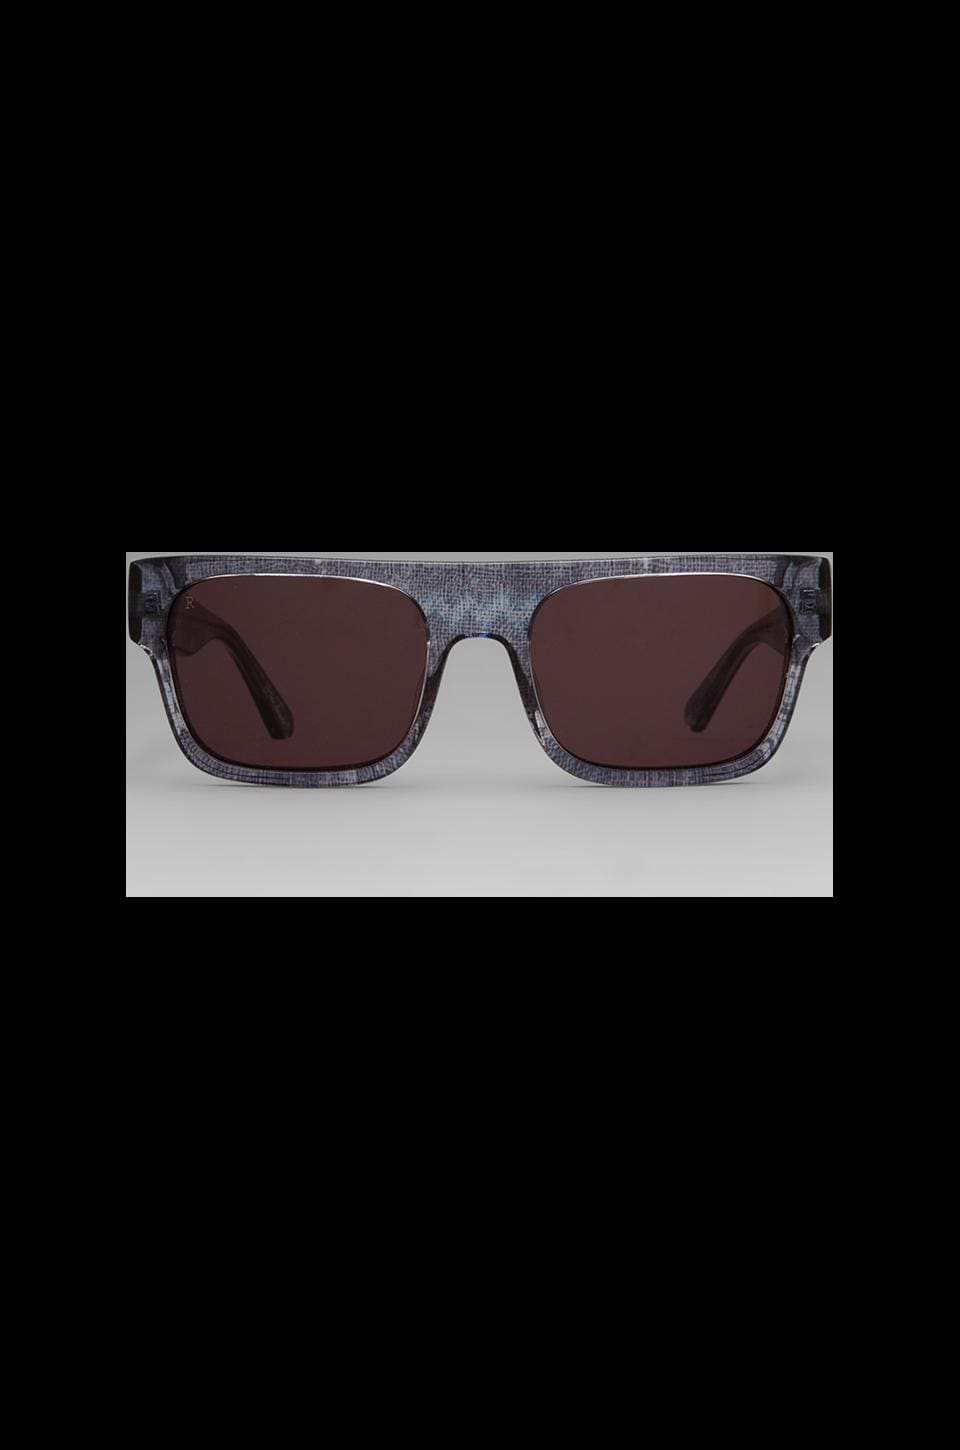 RAEN optics Derbi in Nomad